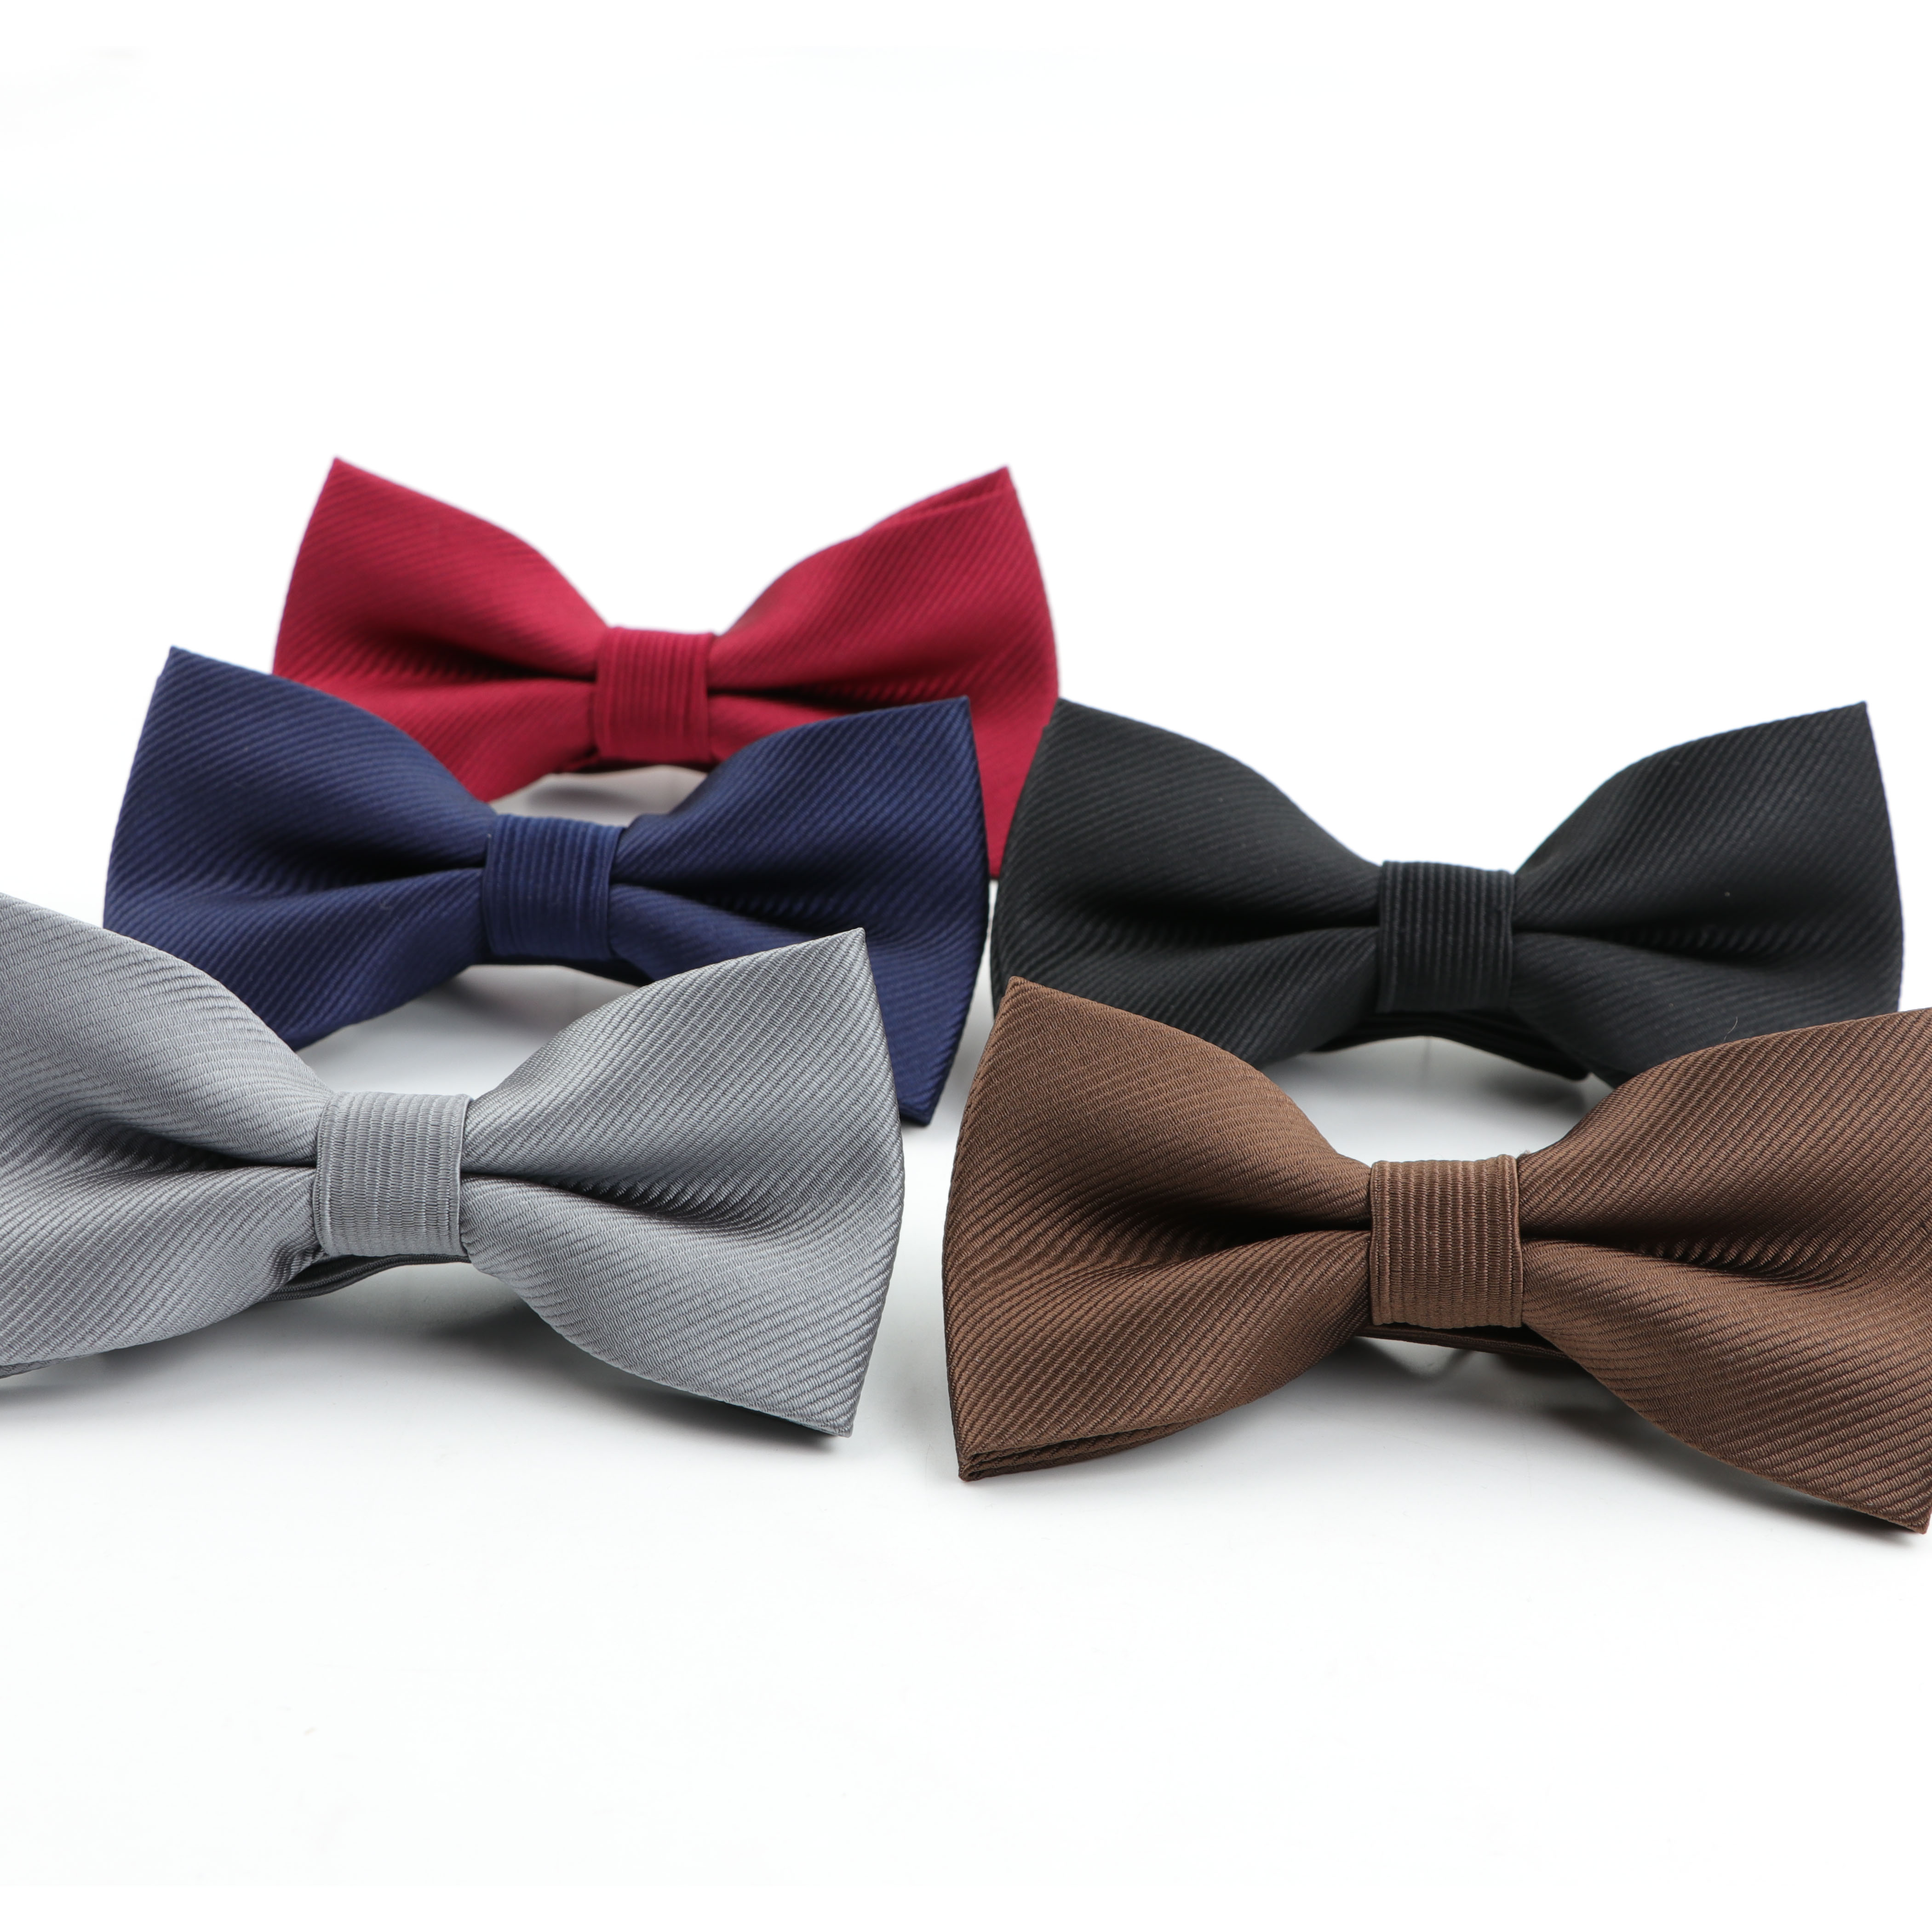 Classical Solid Fashion Bowties Groom Men Colorful Striped Cravat Grid Male Marriage Butterfly Wedding Bow Ties